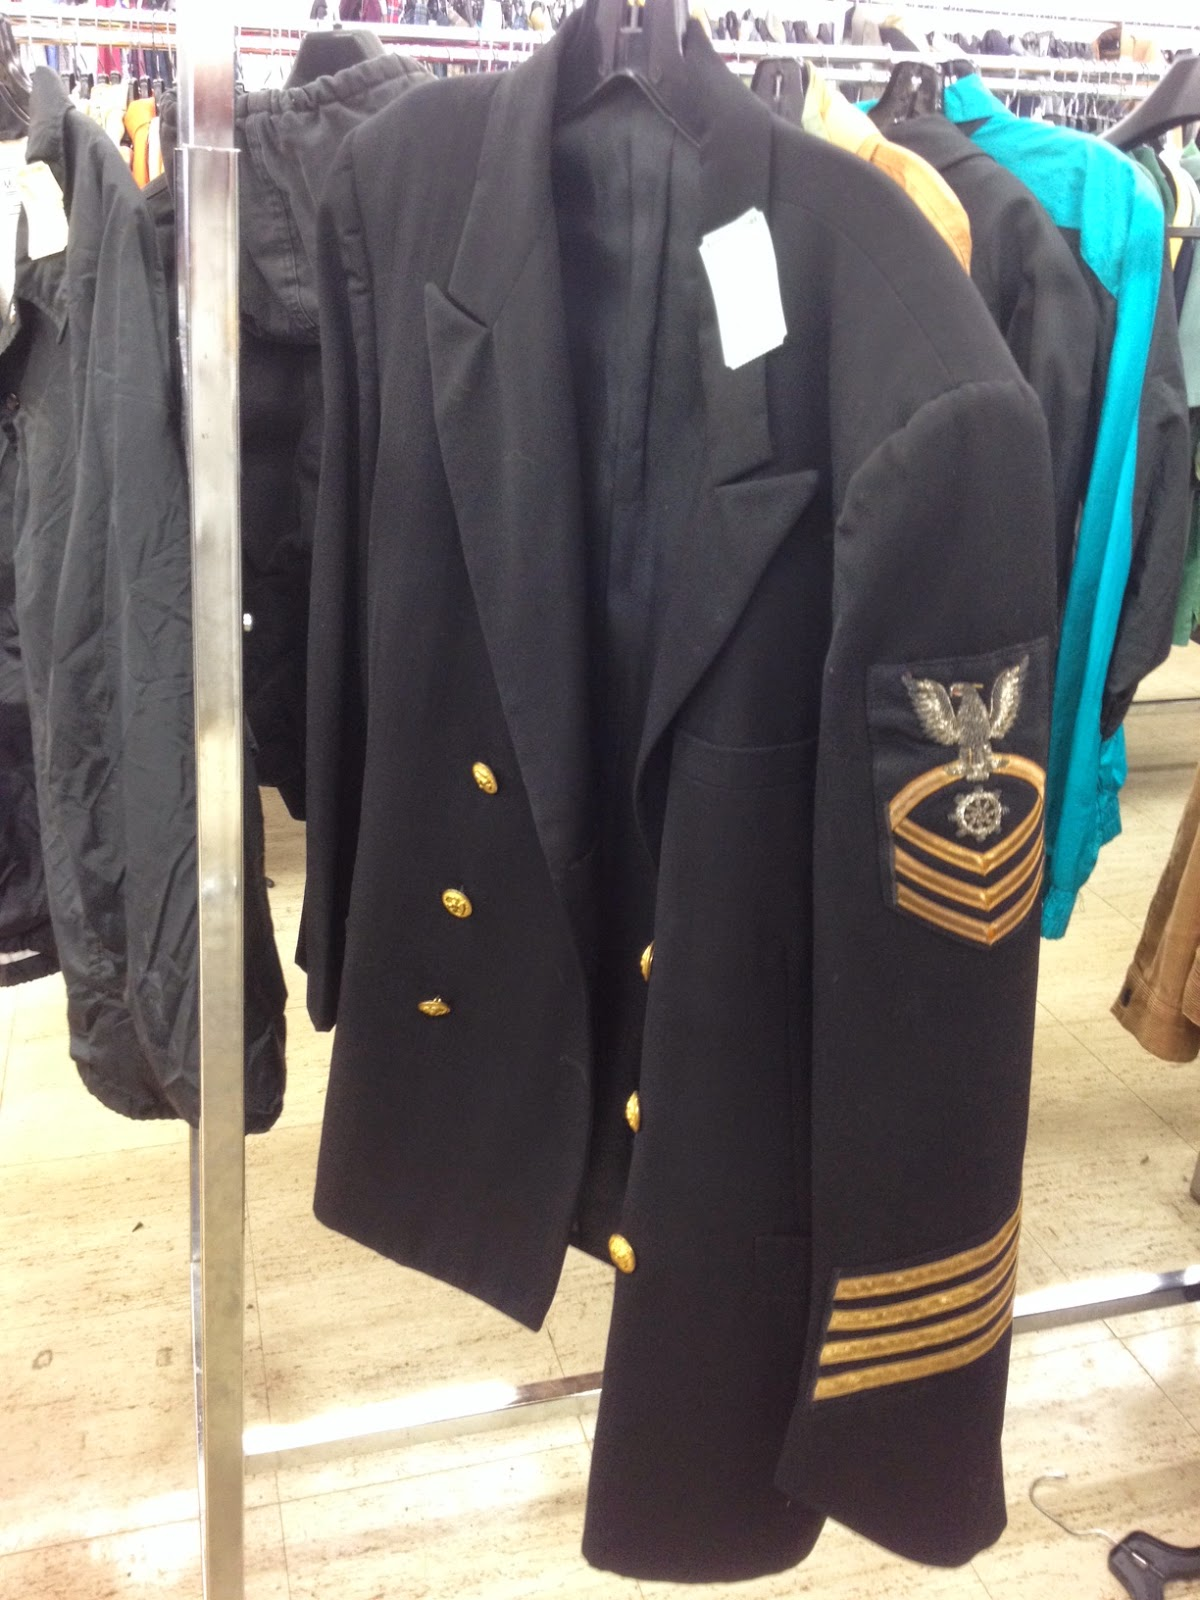 Navy Uniform - Poem #8 for April 2014 Poetry Project